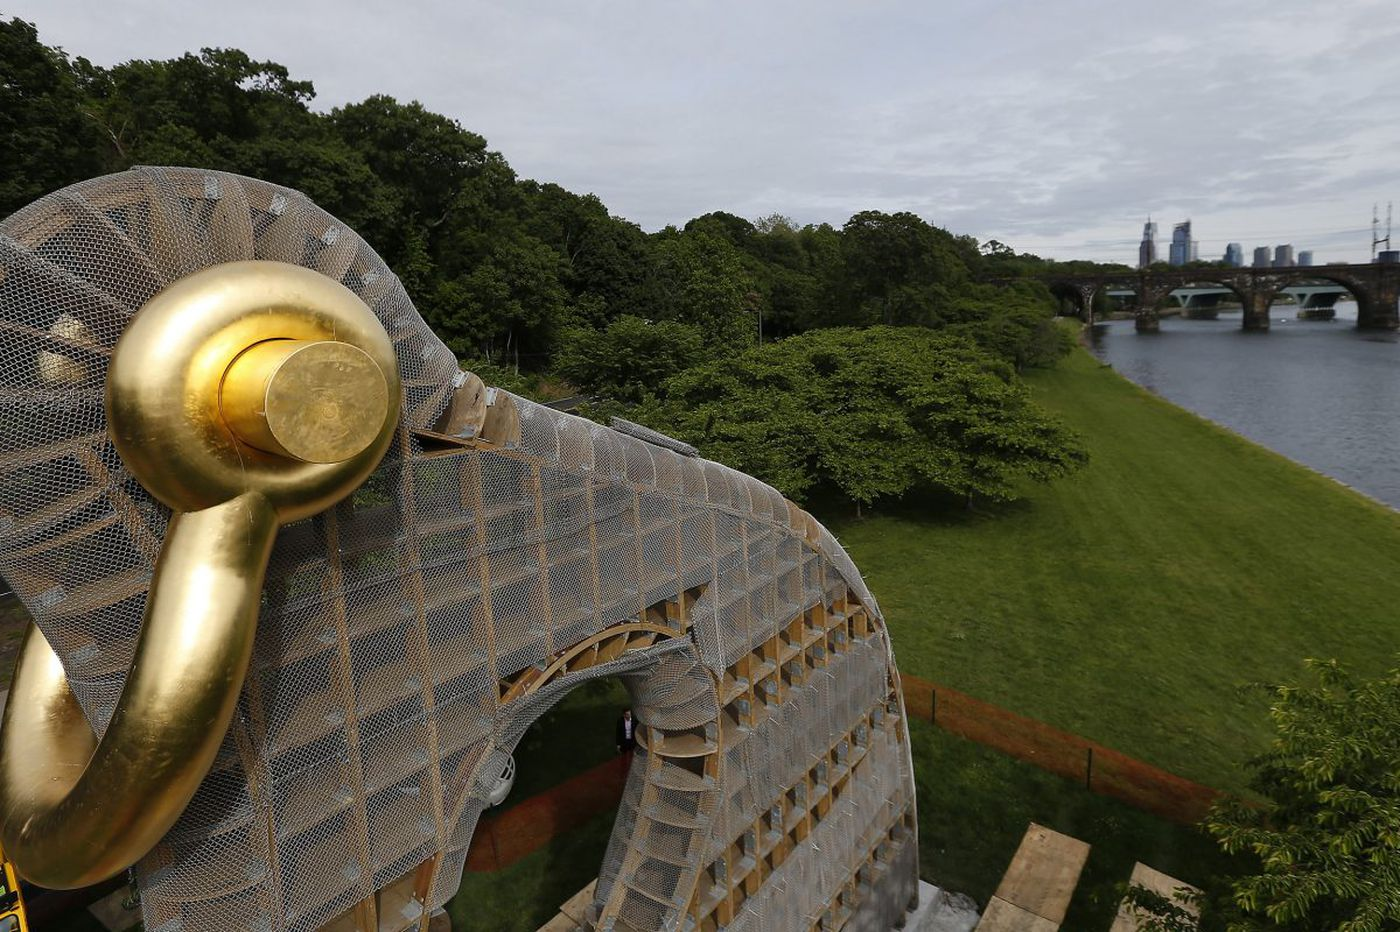 Ta-da! 40-foot 'Big Bling' sculpture on the Schuylkill now has its bling